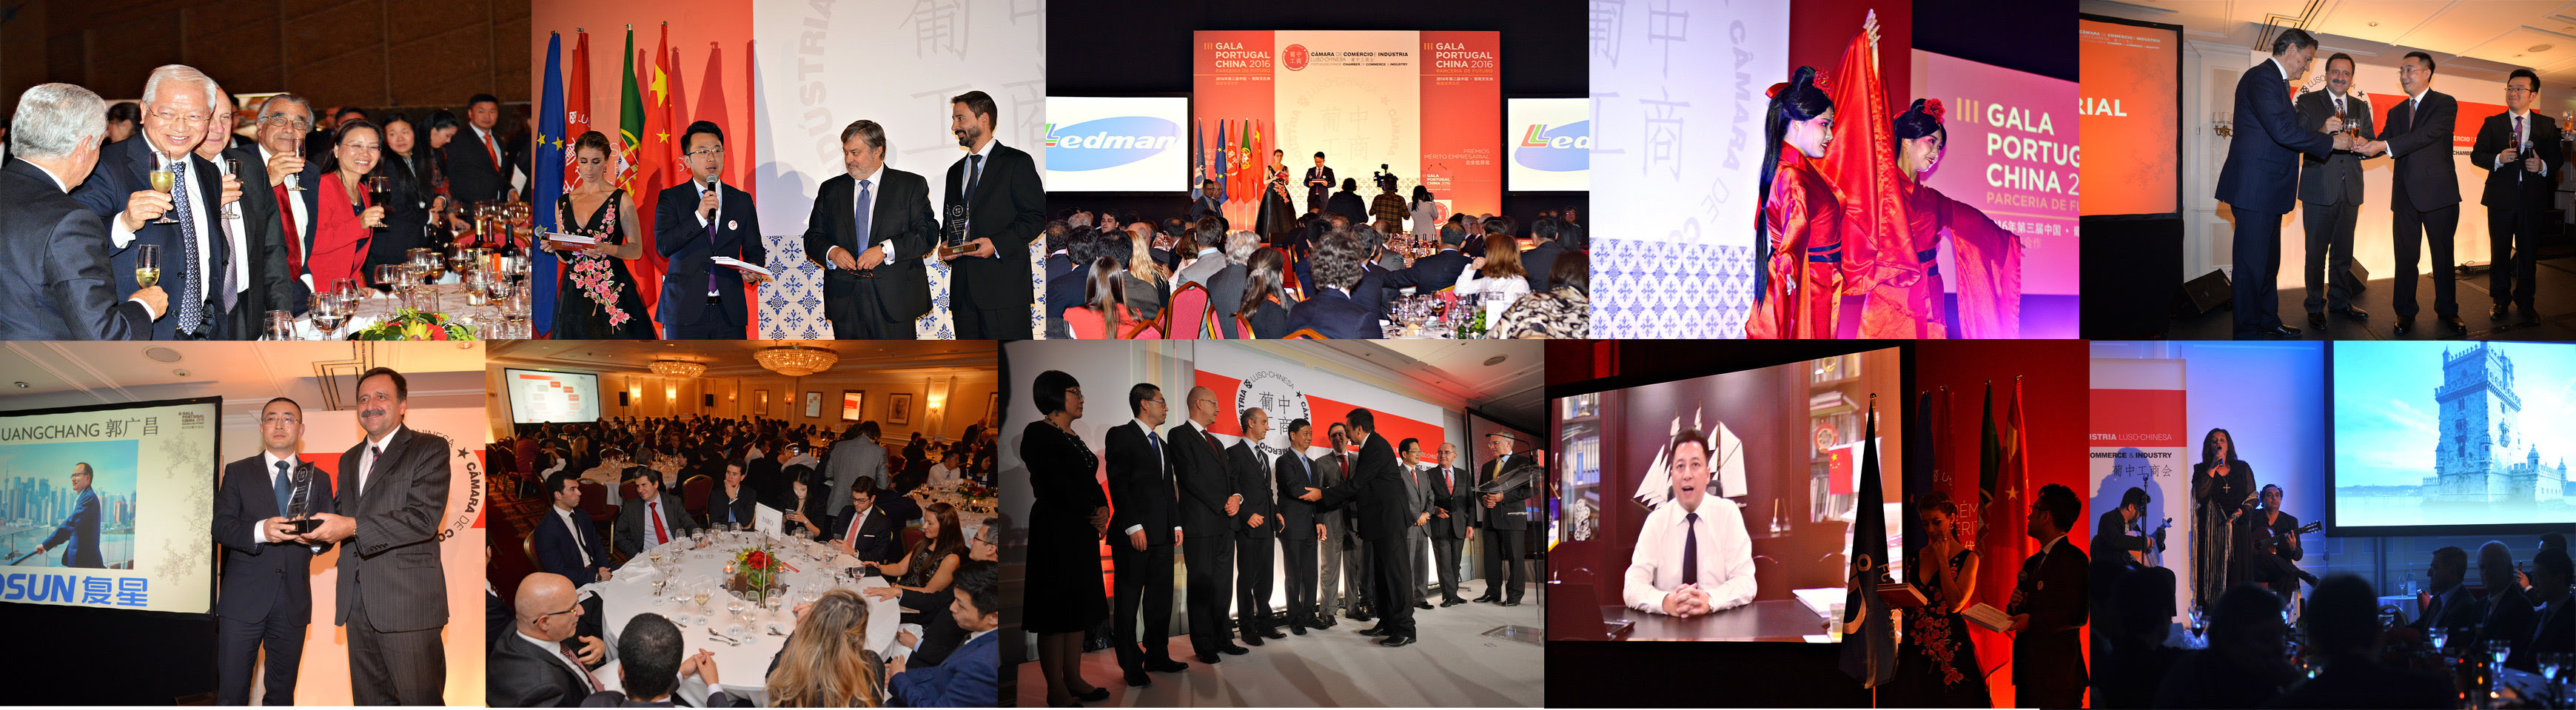 IV Gala Portugal-China 2